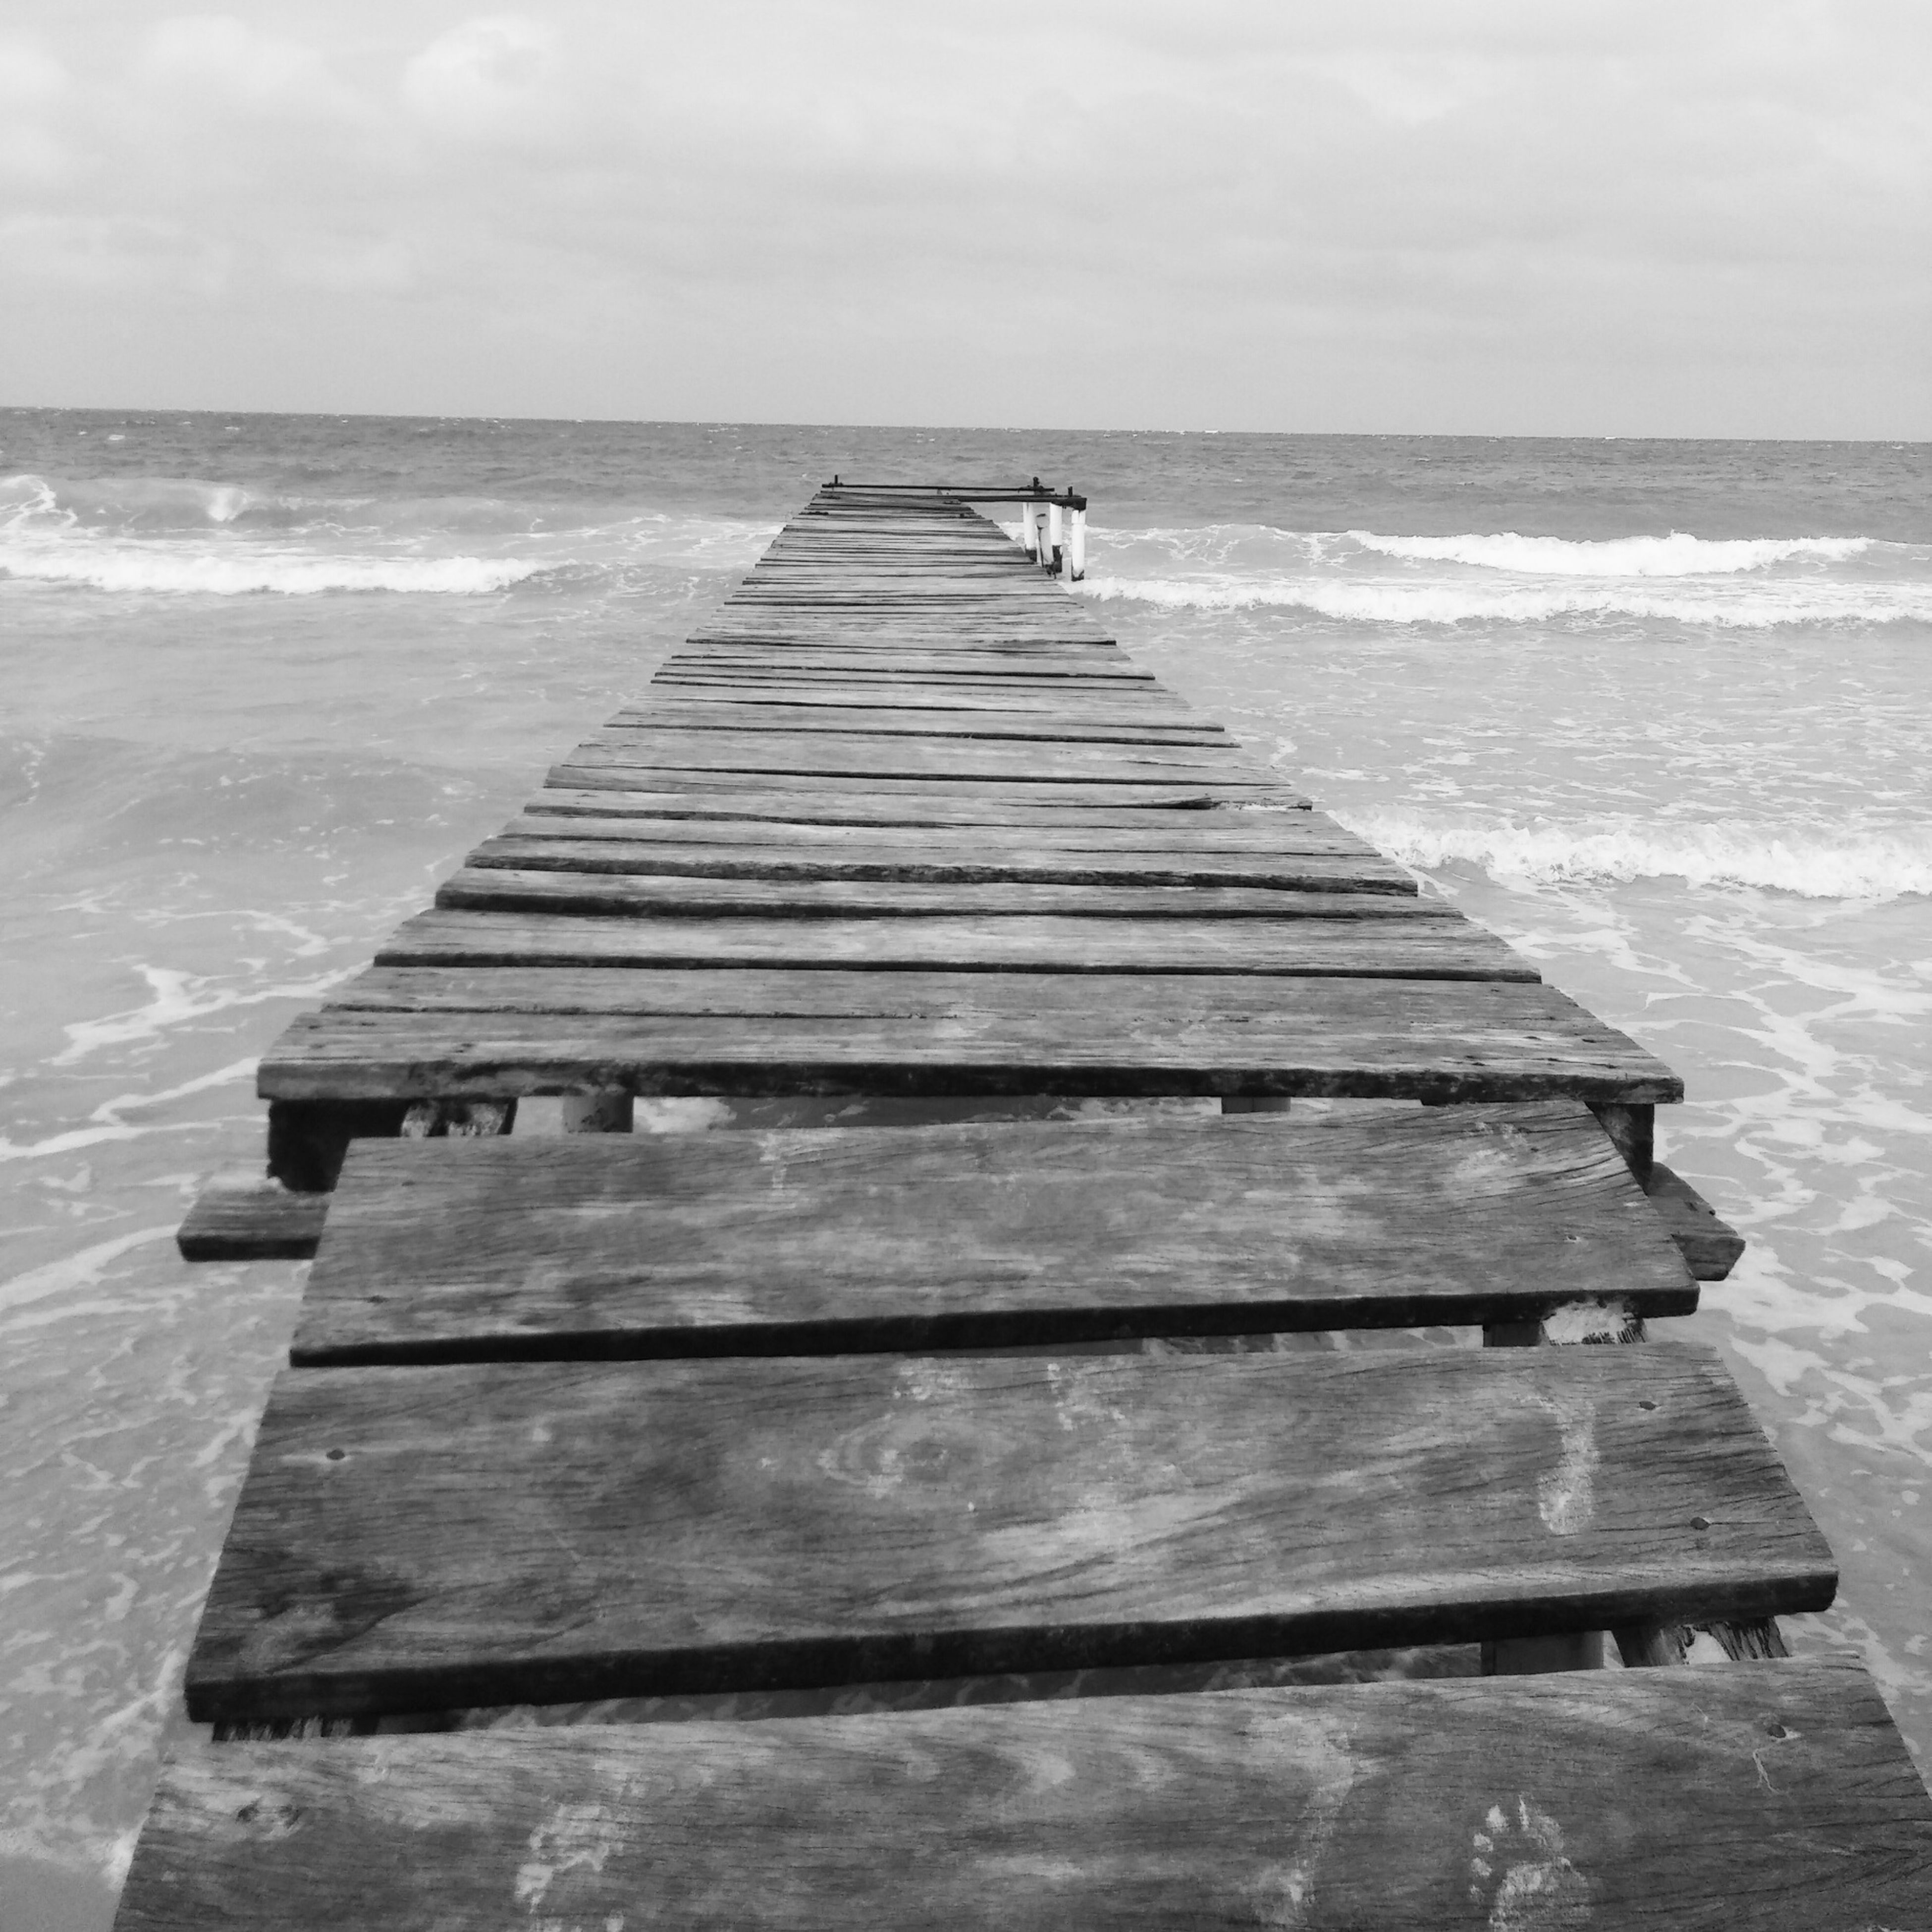 sea, horizon over water, water, sky, pier, steps, beach, wood - material, scenics, tranquility, tranquil scene, nature, staircase, beauty in nature, railing, shore, jetty, wave, day, idyllic